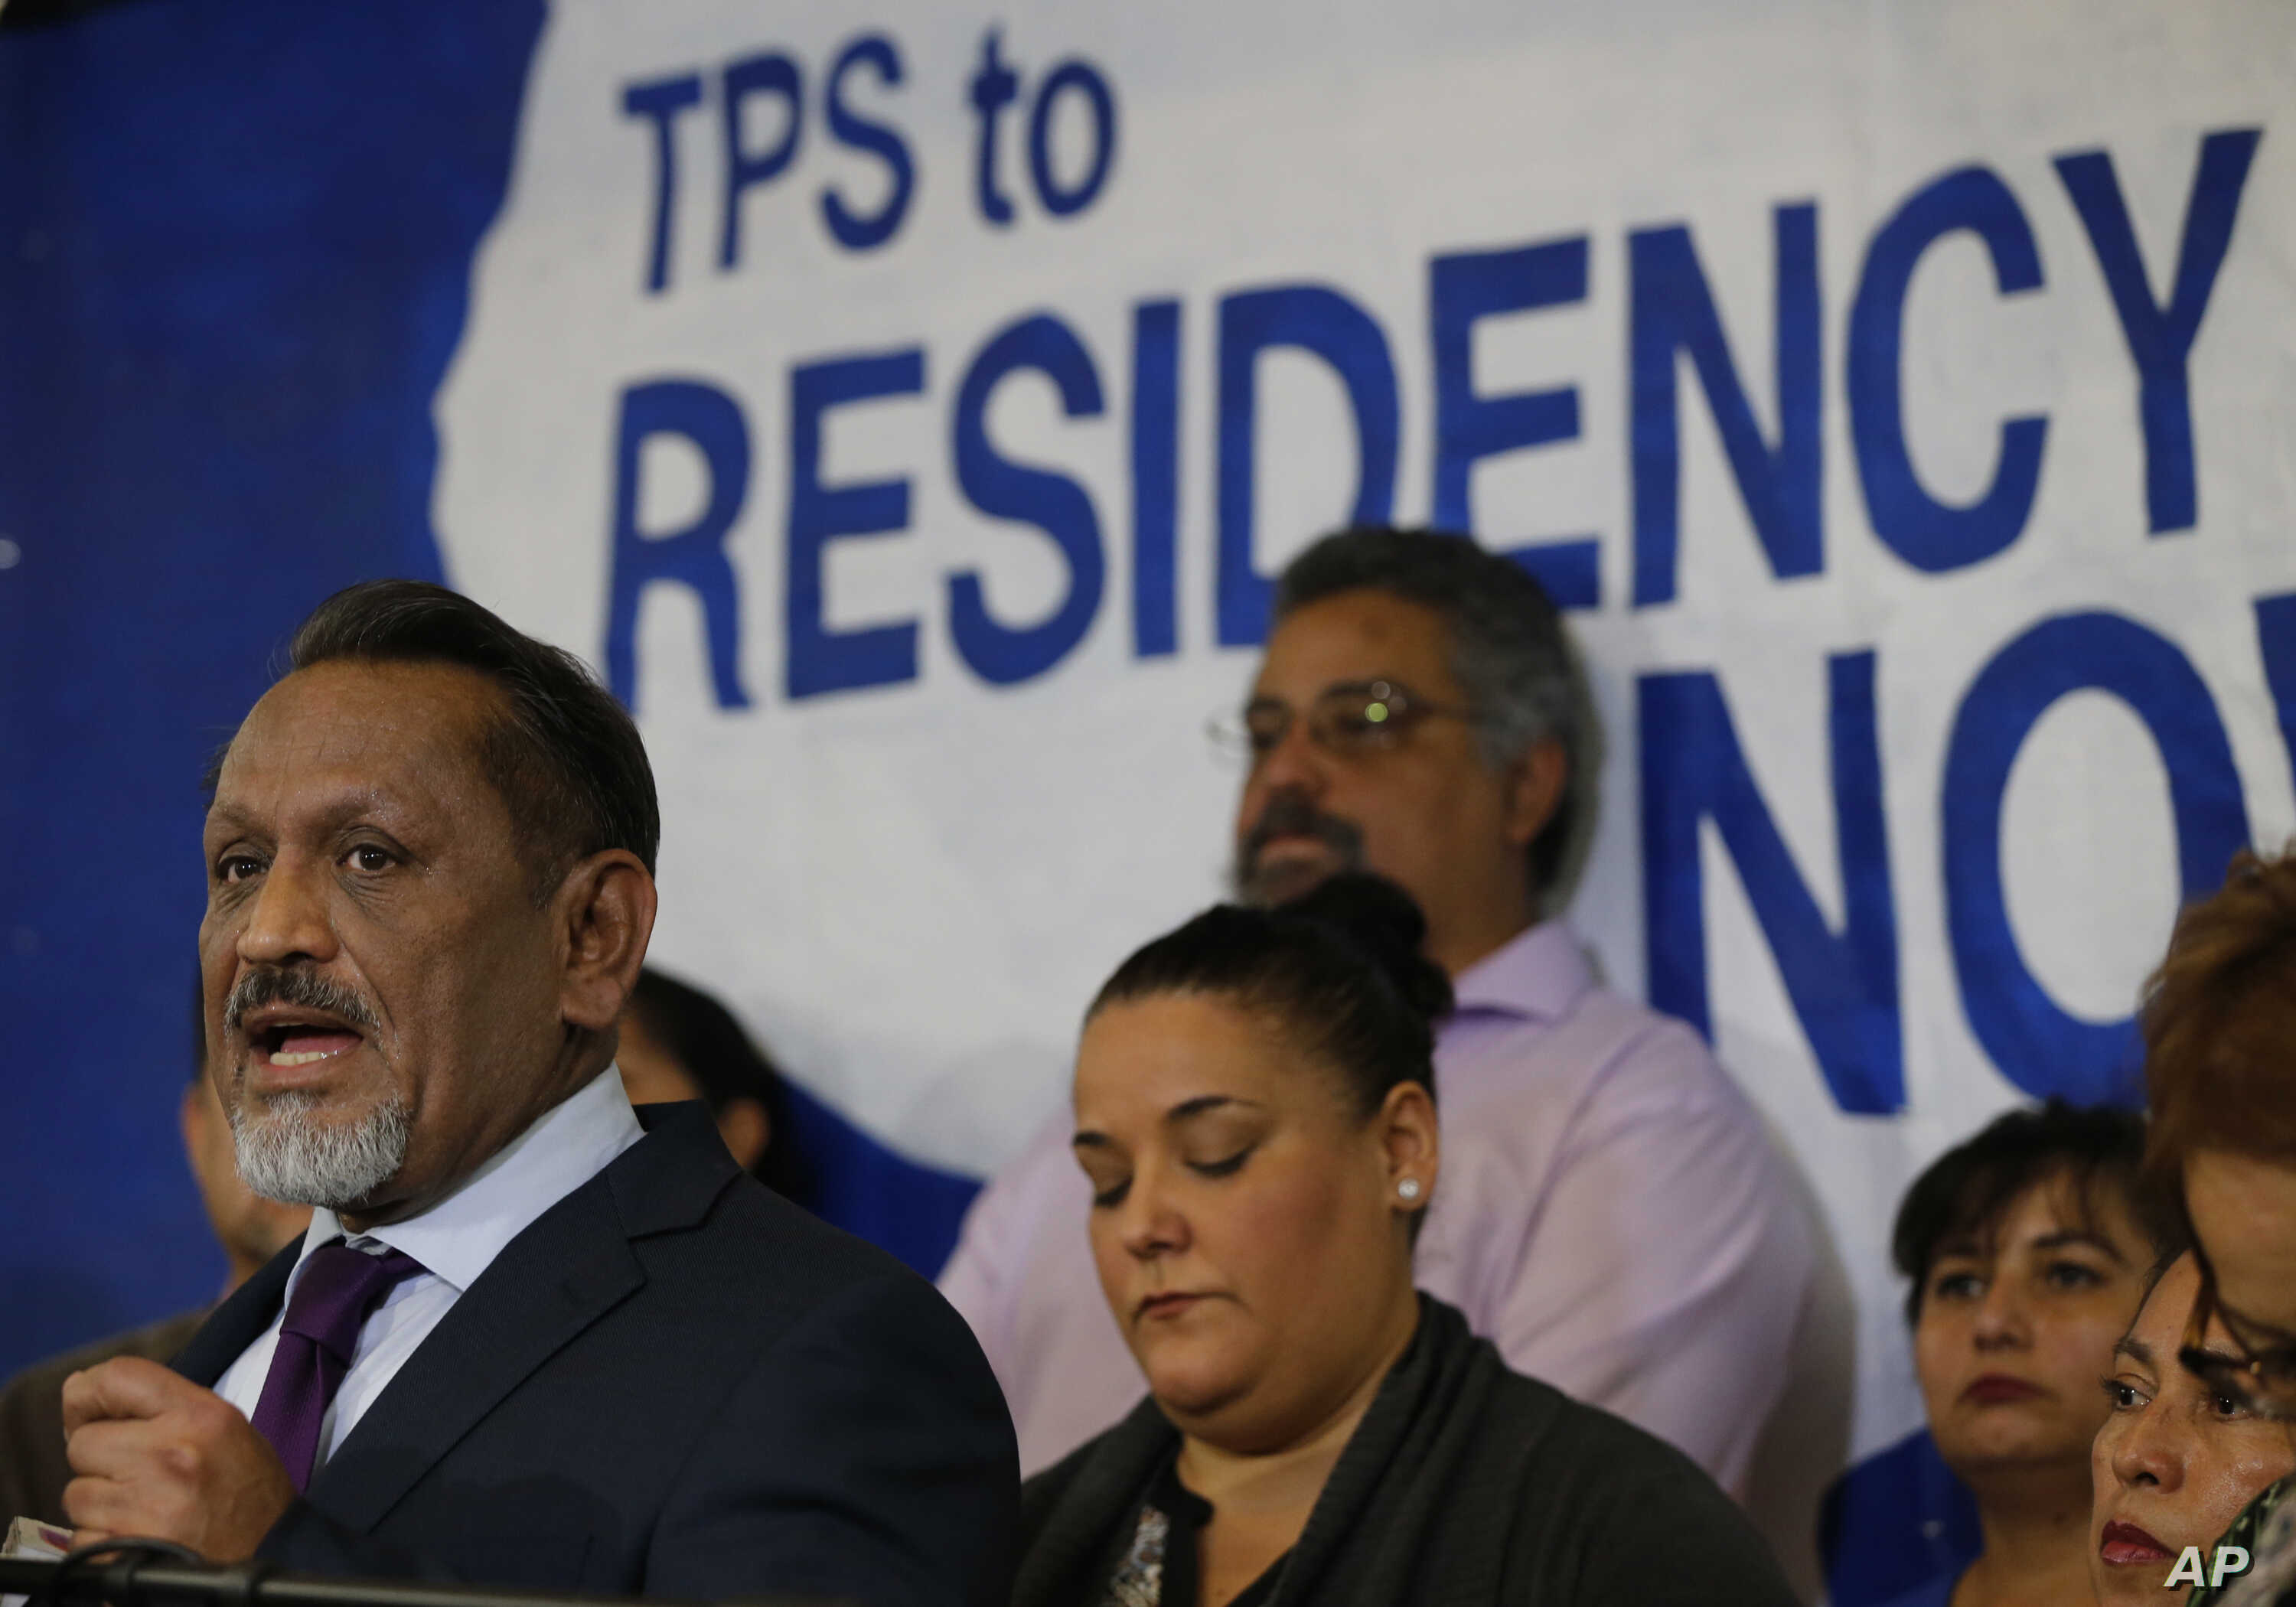 Los Angeles City Council member Gil Cedillo, far left, speaks following an announcement on the fate of Temporary Protected Status for nationals of El Salvador, in Los Angeles, Jan. 8, 2018.